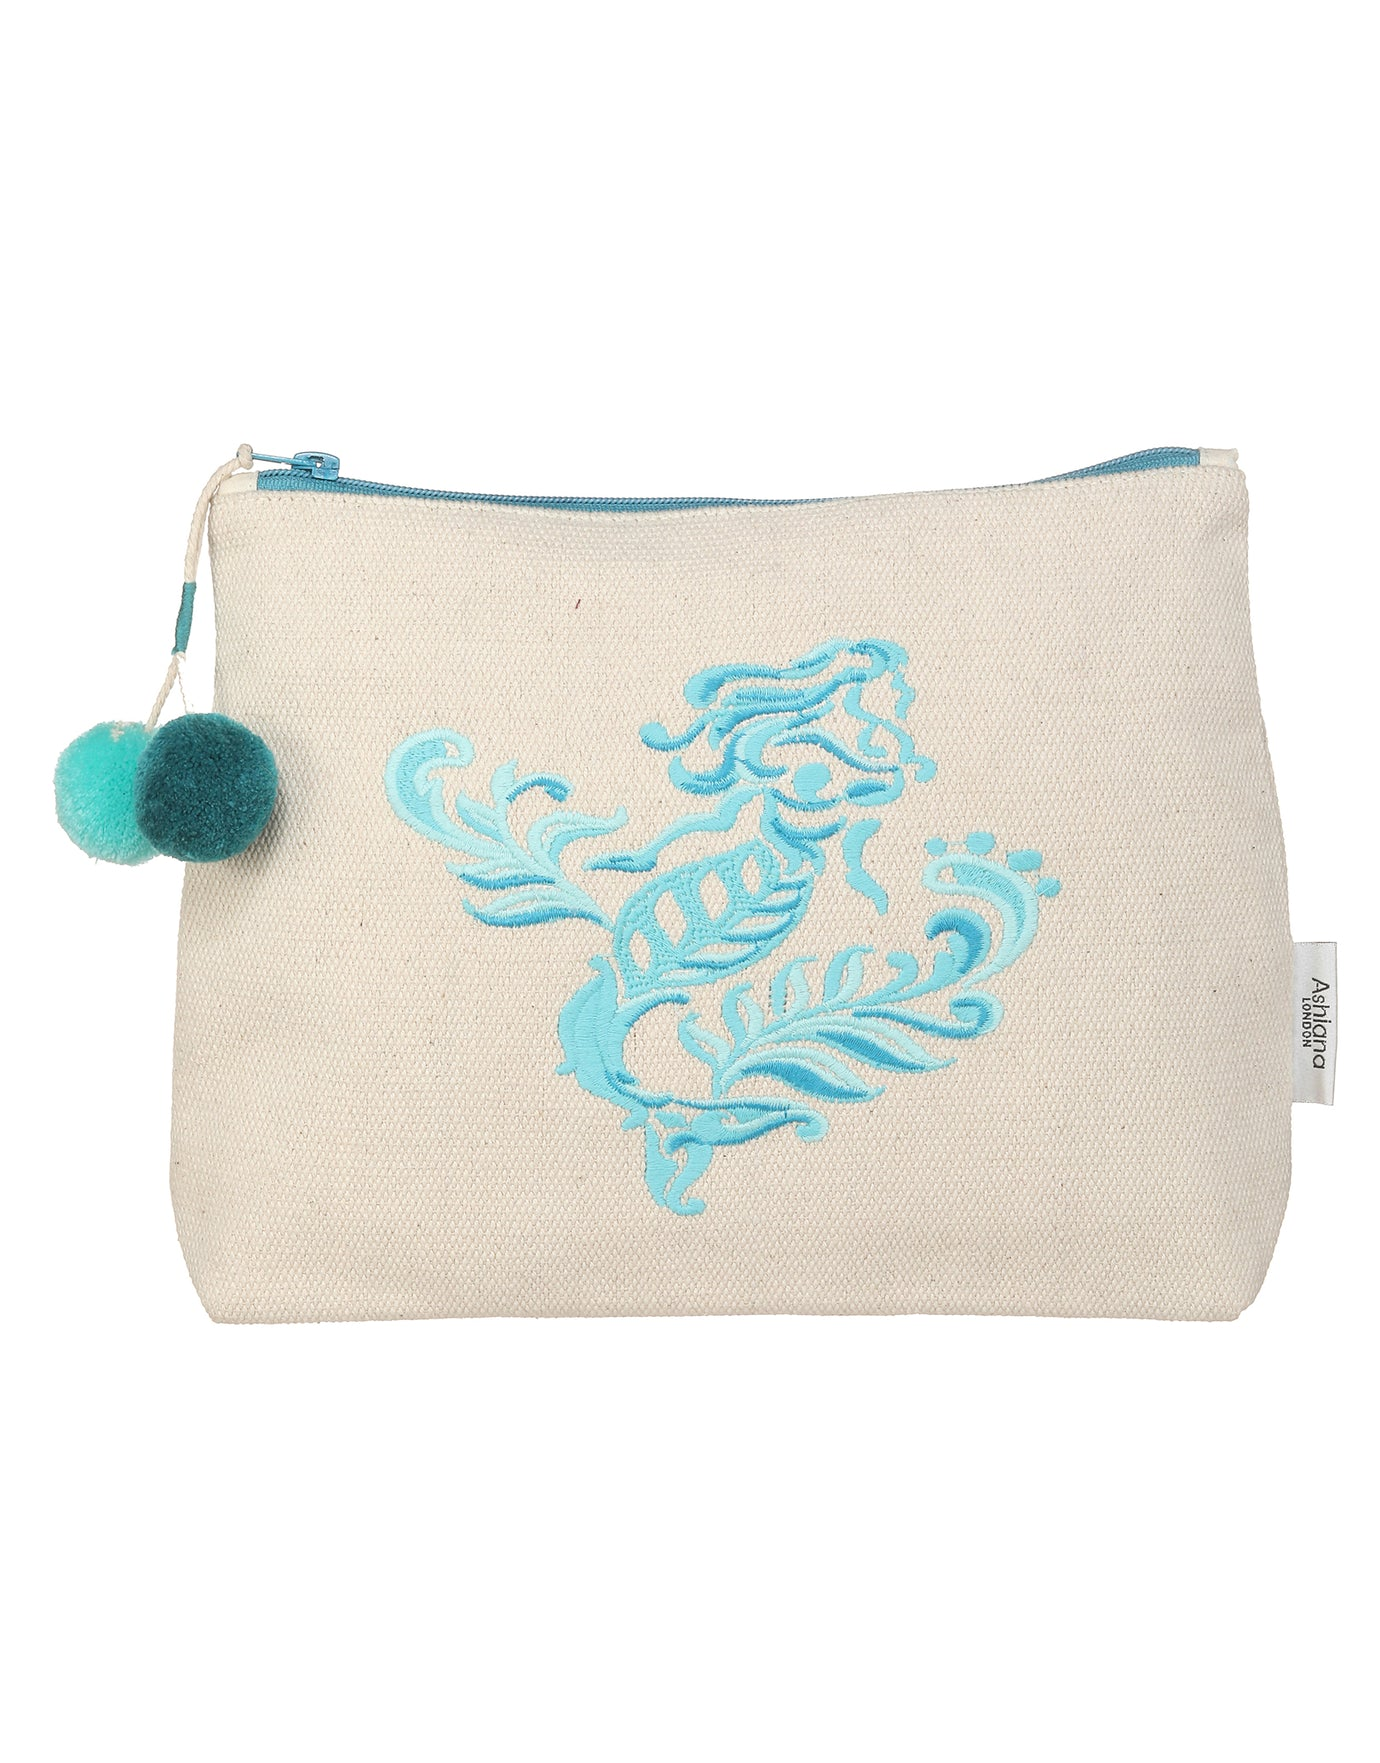 Ashiana Los Angeles Travel Pouch - Mermaid